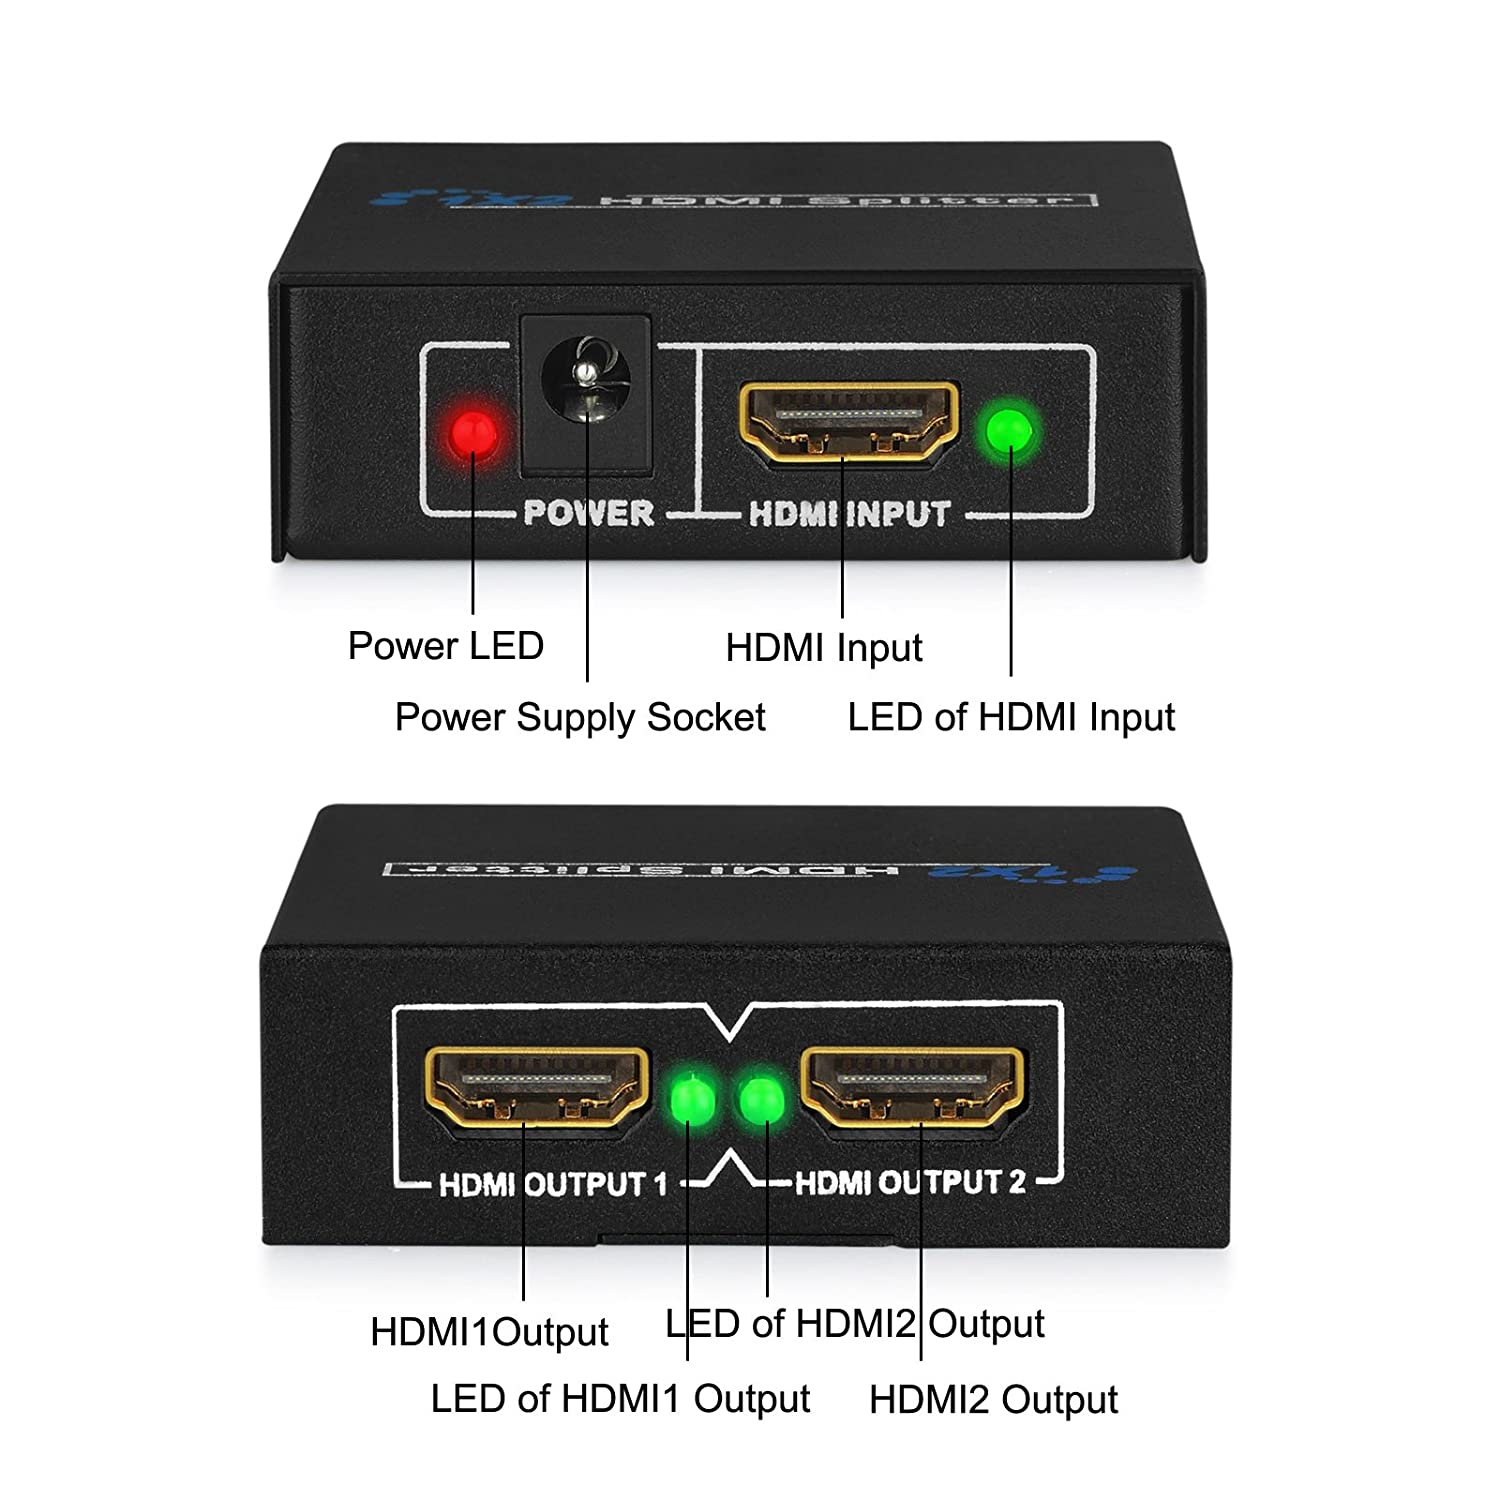 ESYNiC HDP02 2 Way HDMI Splitter Amplifier Switch